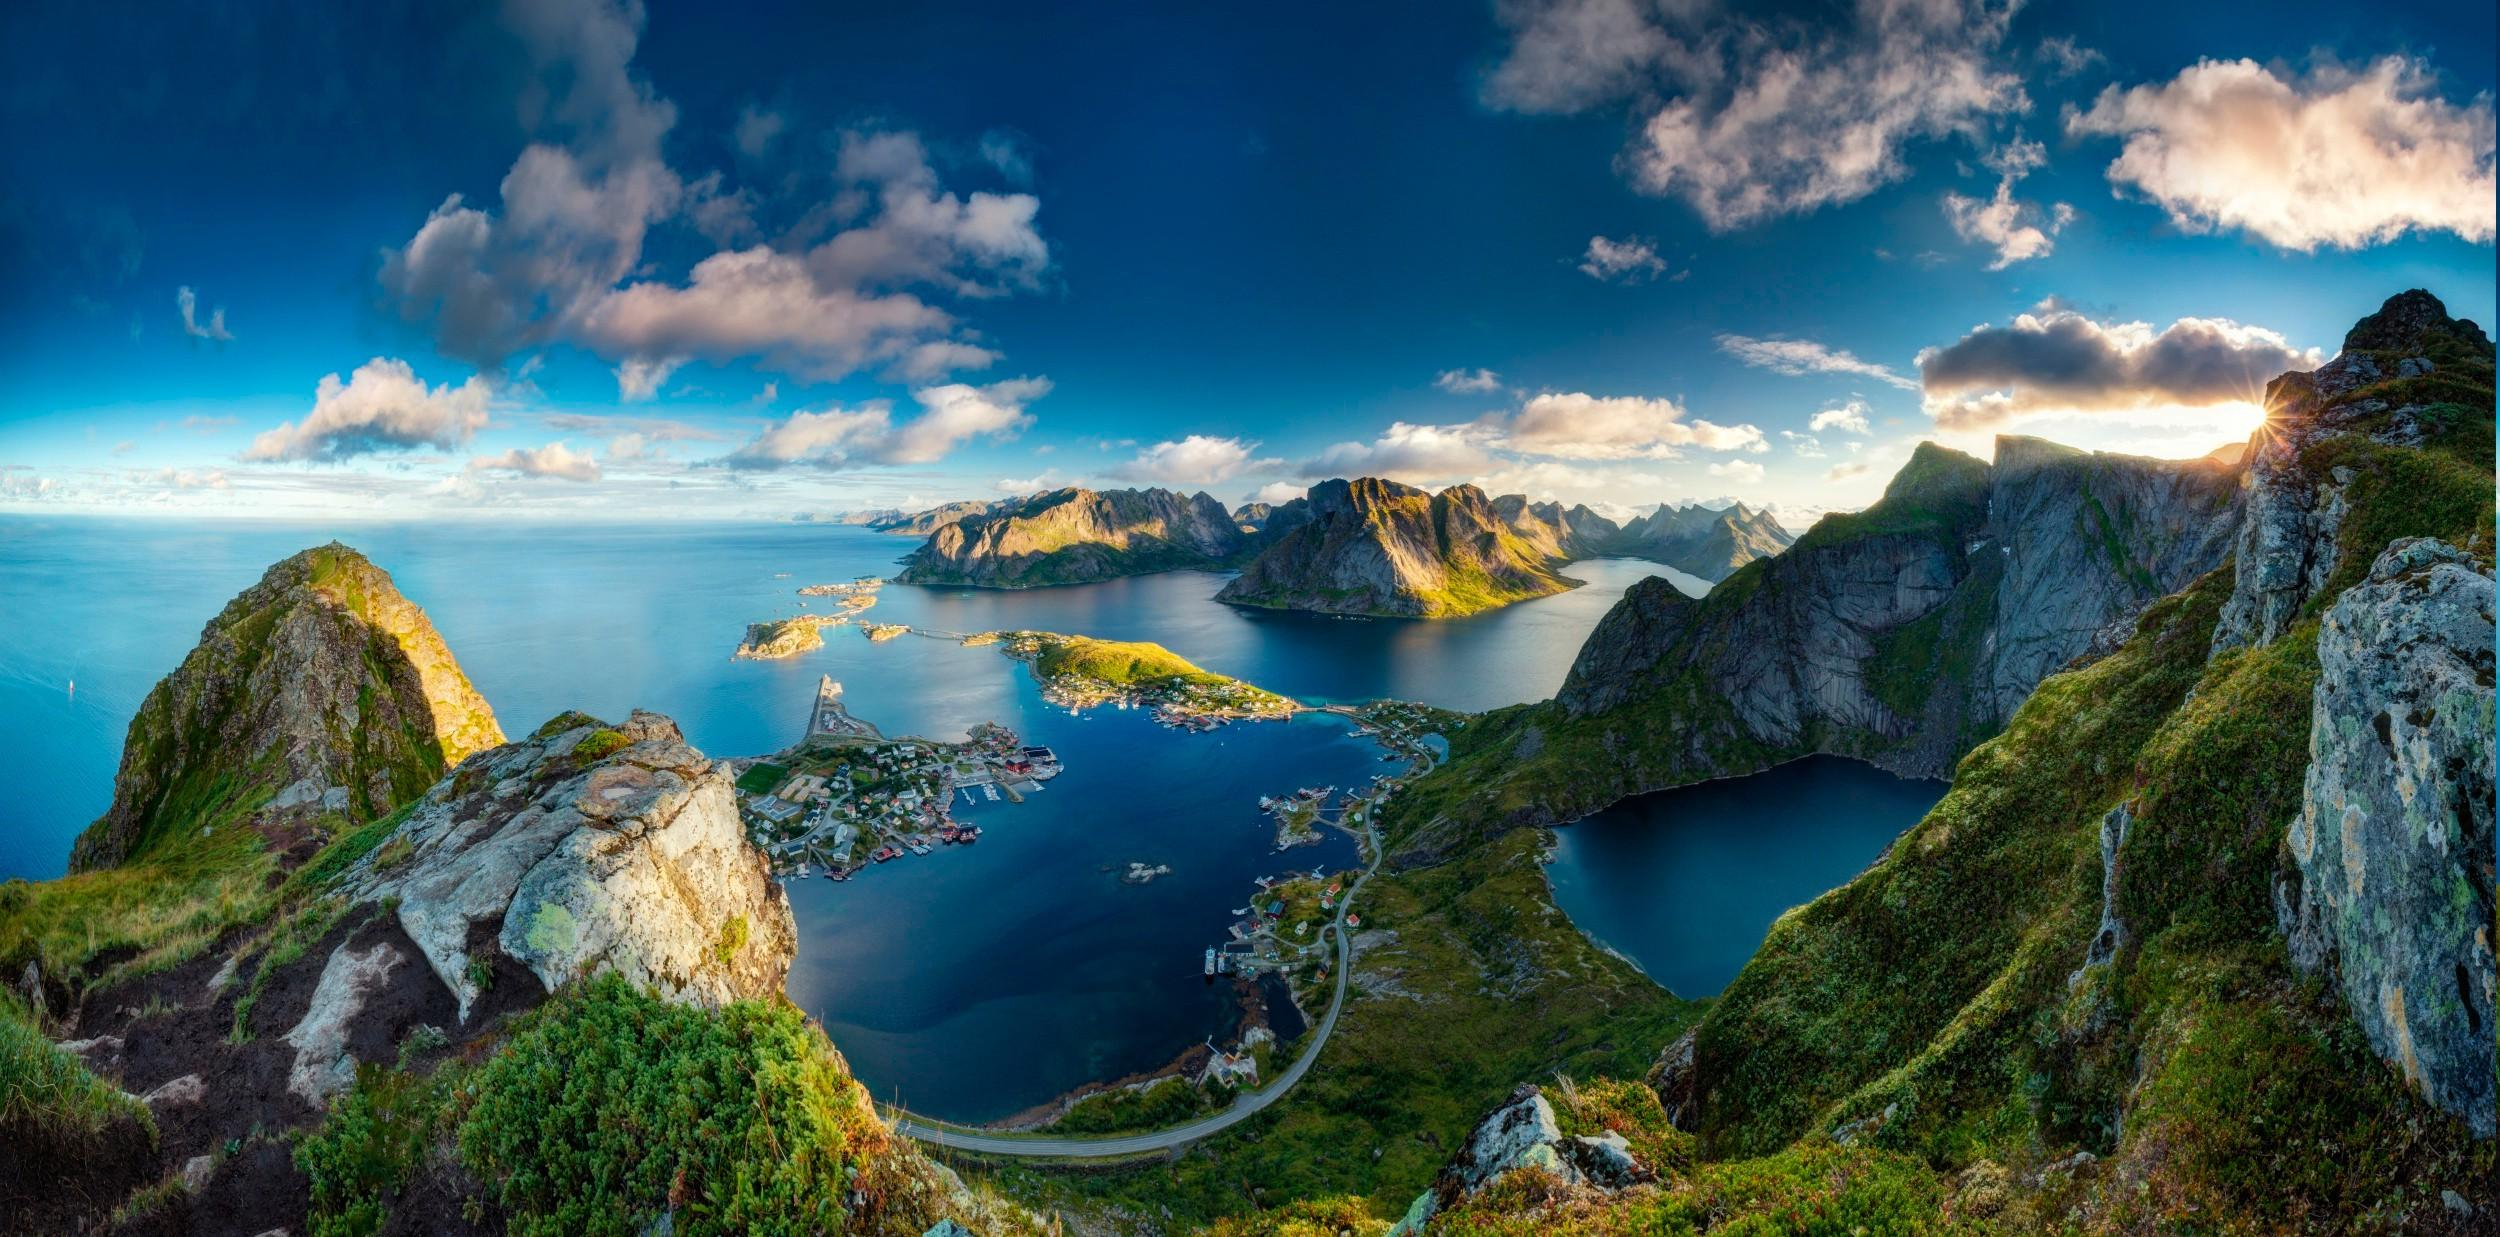 Most Inspiring Wallpaper Mountain Cloud - sun-mountain-landscape-sea-nature-norway-wallpaper  Pic_797974.jpg